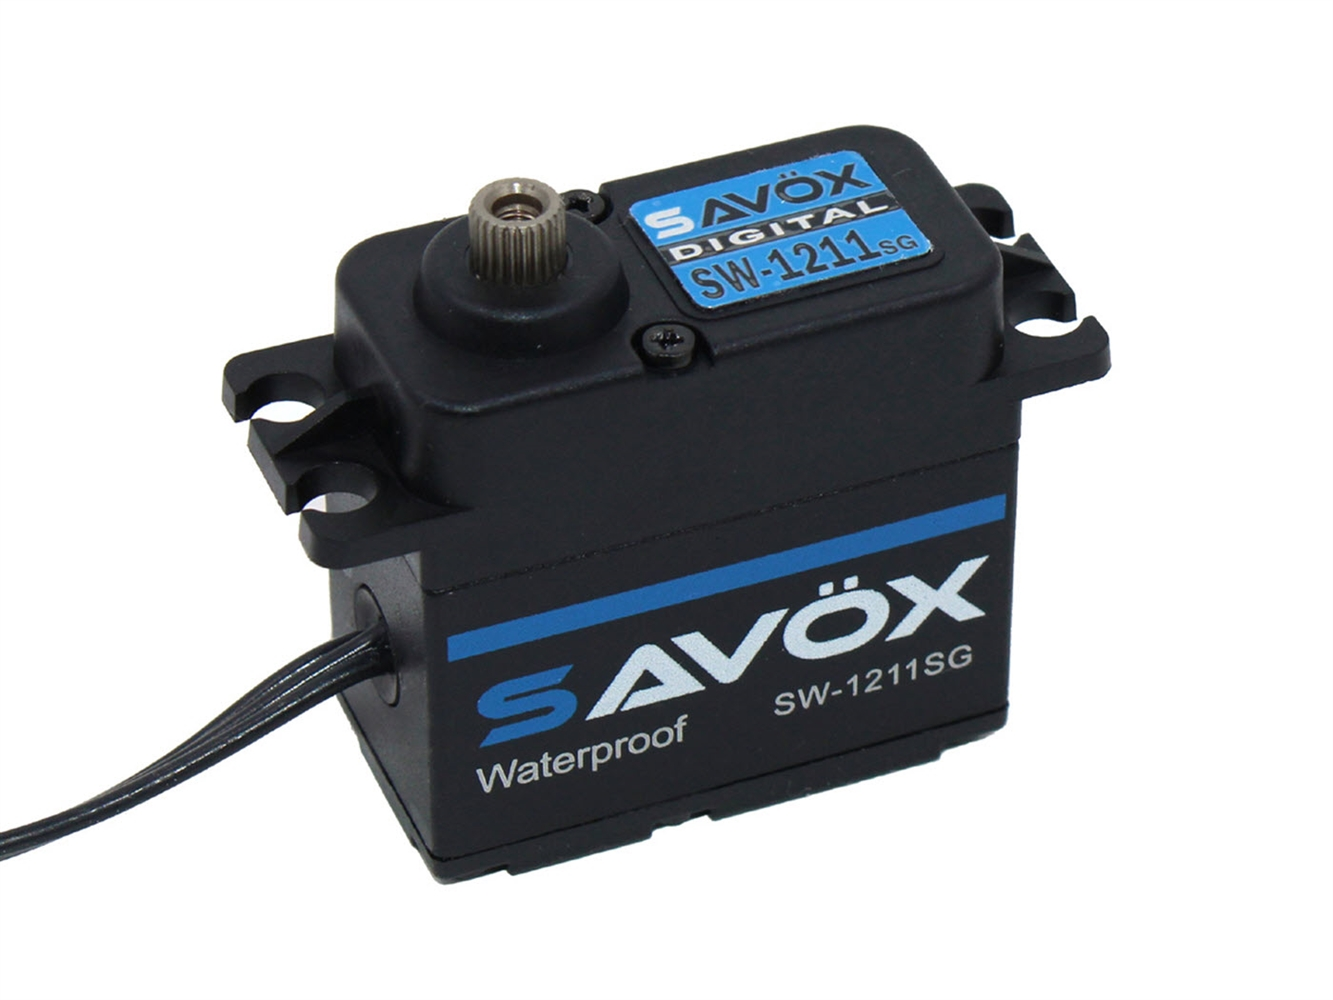 Savox Waterproof High Voltage Digital Servo 0.08sec / 347.2oz @ 7.4V - Black Edition